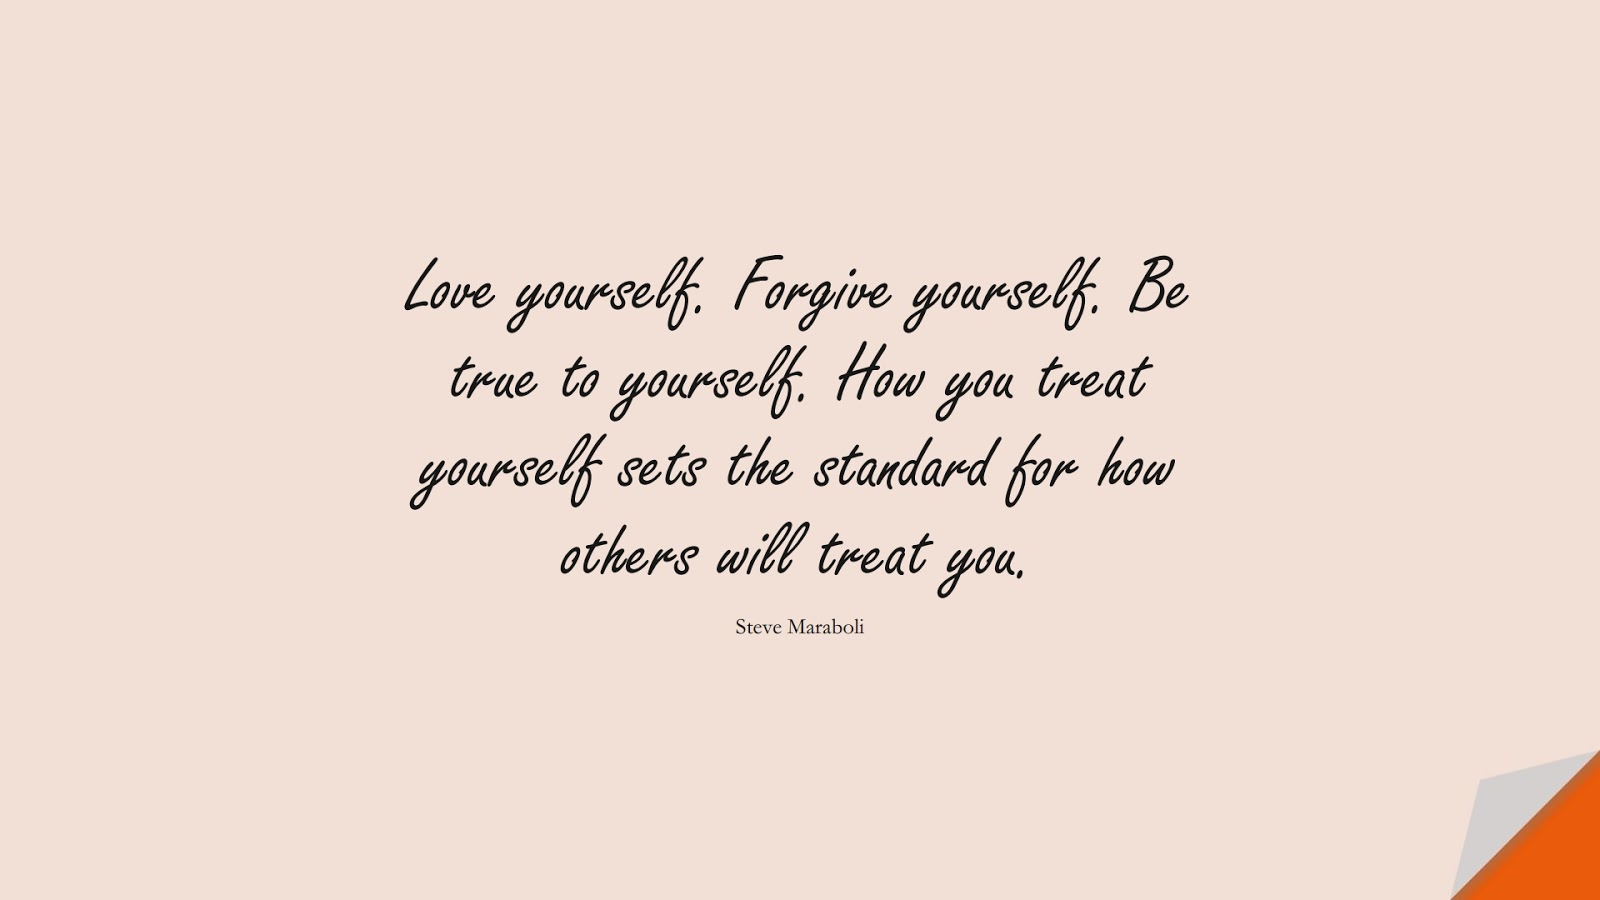 Love yourself. Forgive yourself. Be true to yourself. How you treat yourself sets the standard for how others will treat you. (Steve Maraboli);  #InspirationalQuotes